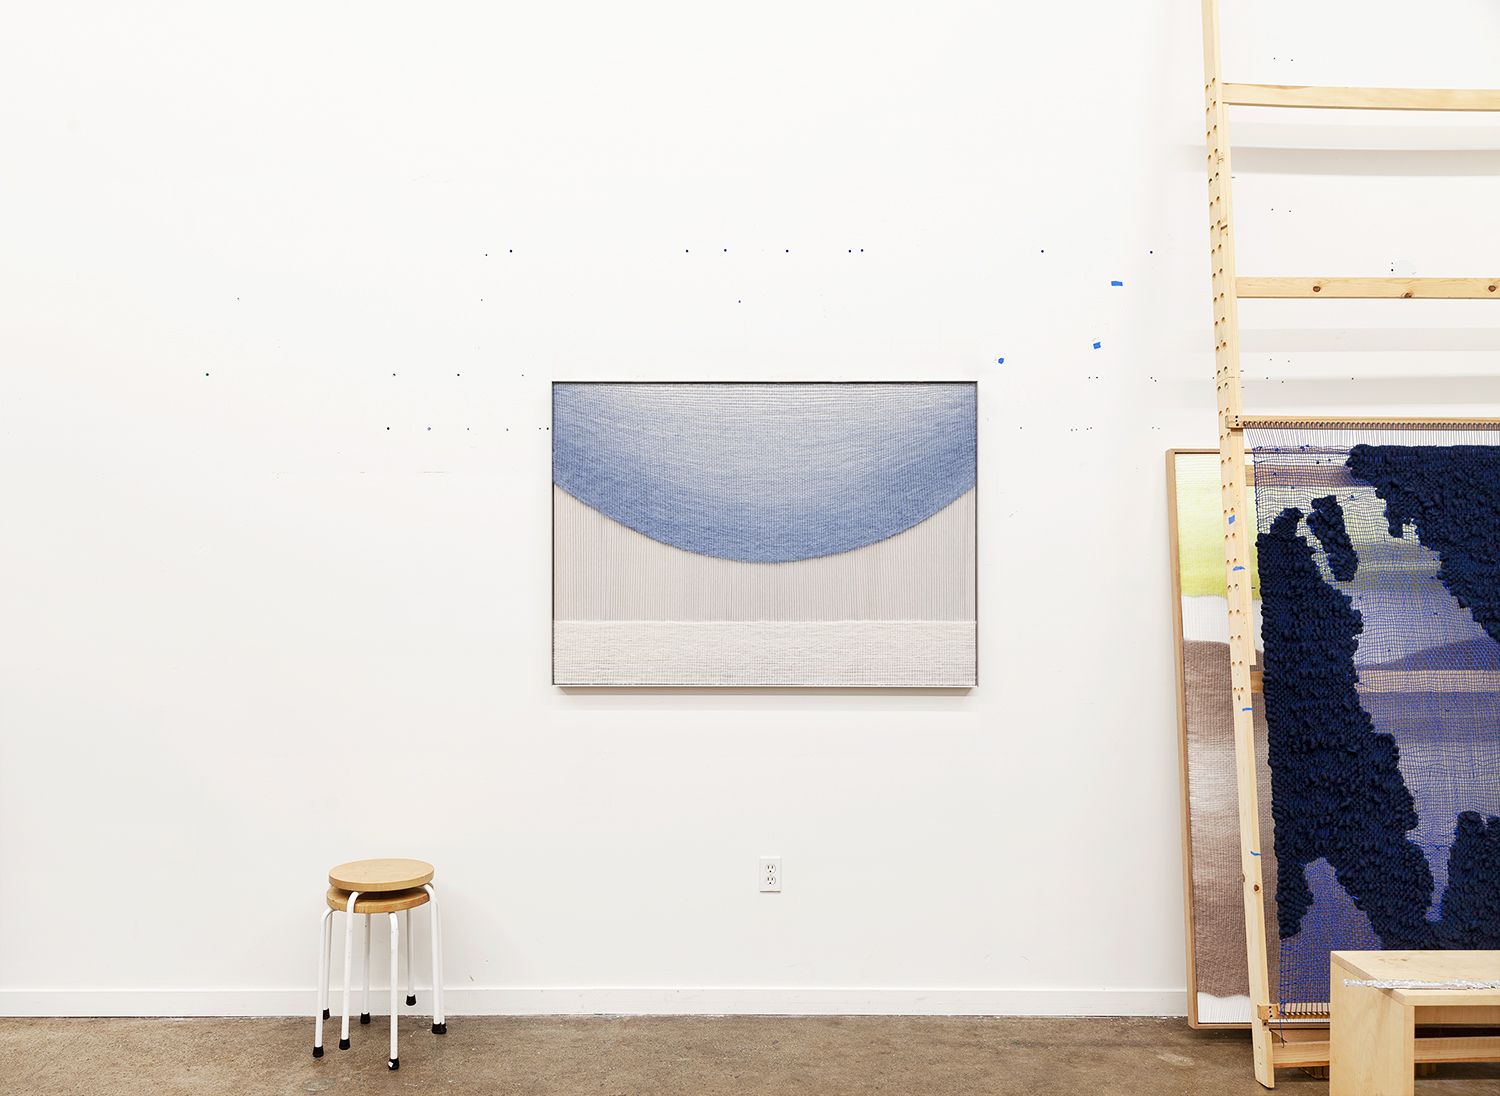 MimiJung_Pale_Blue_Ellipse_and_White_Rectangle_3.jpg